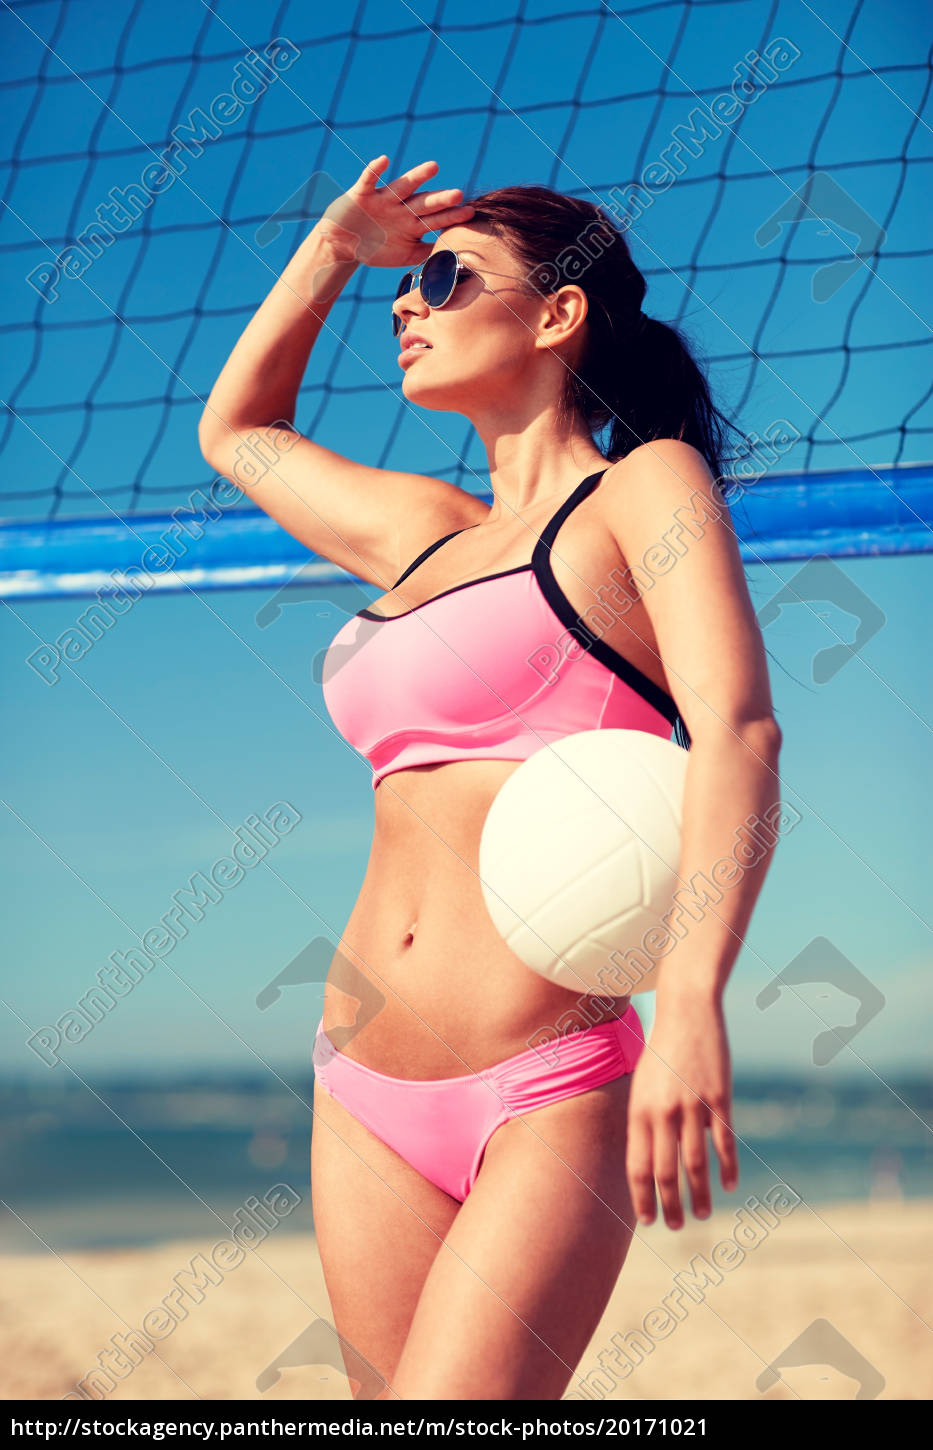 young, woman, with, volleyball, ball, and - 20171021